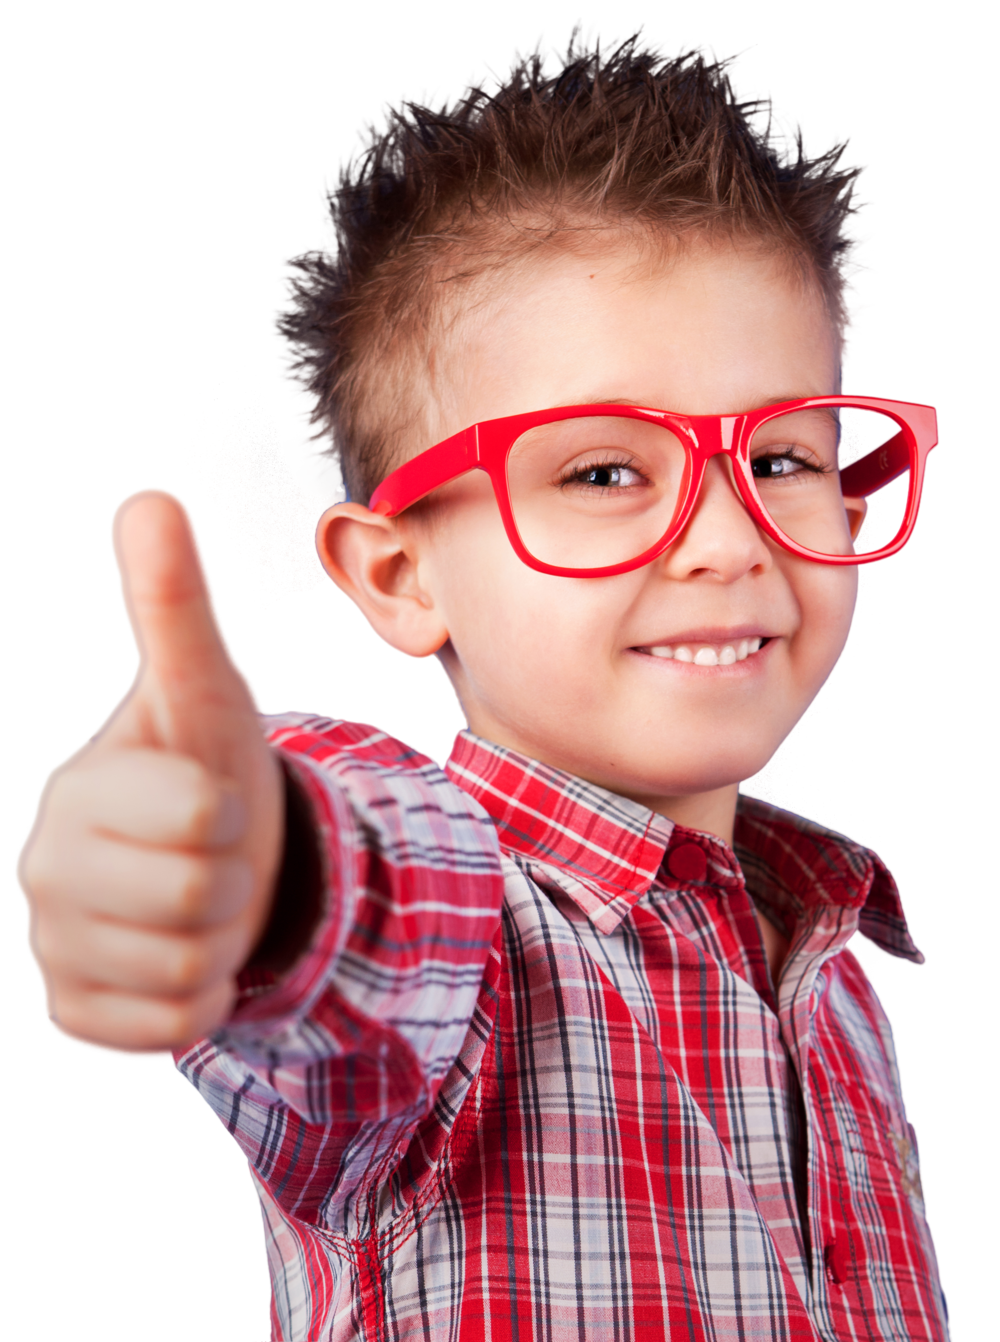 Cool kid stock image png. Children kids images free